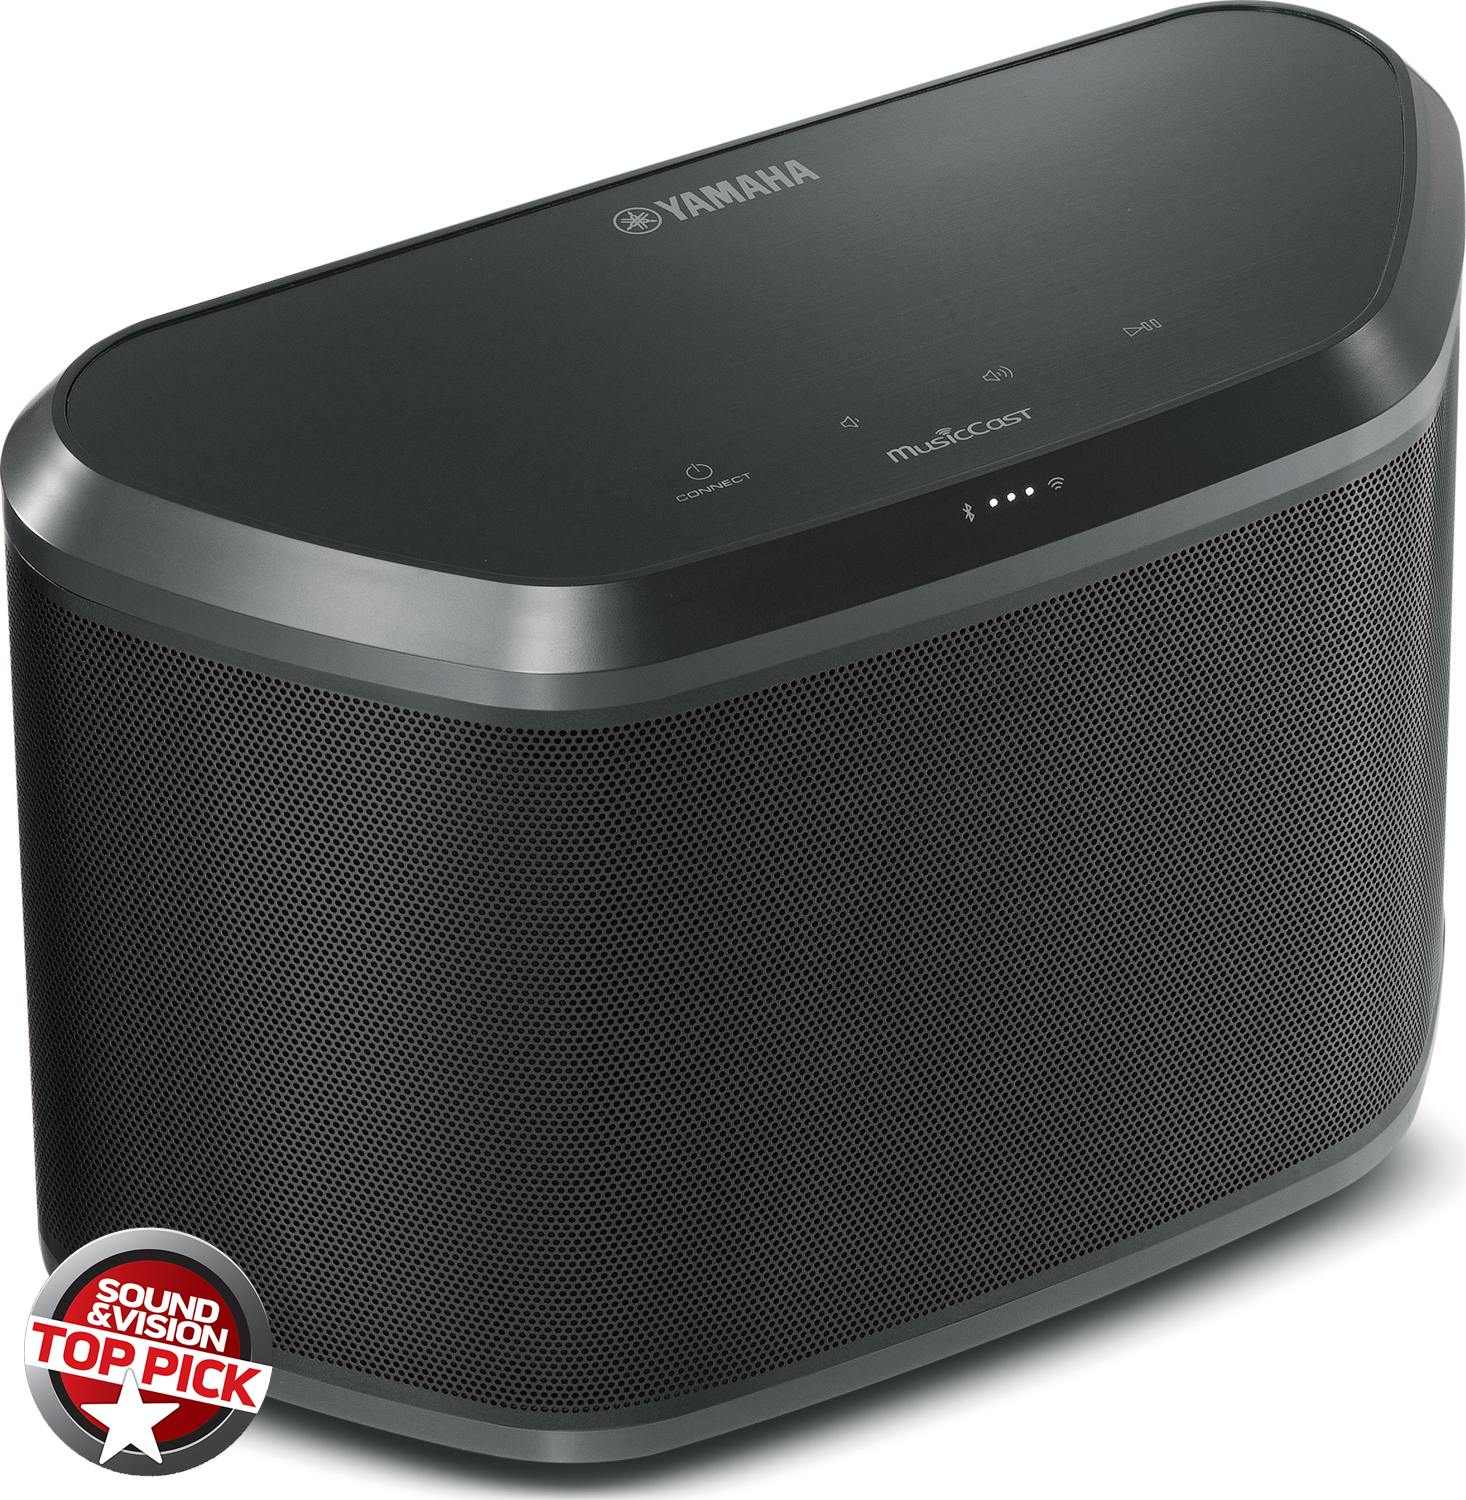 YAMAHA MusicCast WX-030 Wireless Streaming Speaker Wi-Fi/Bluetooth